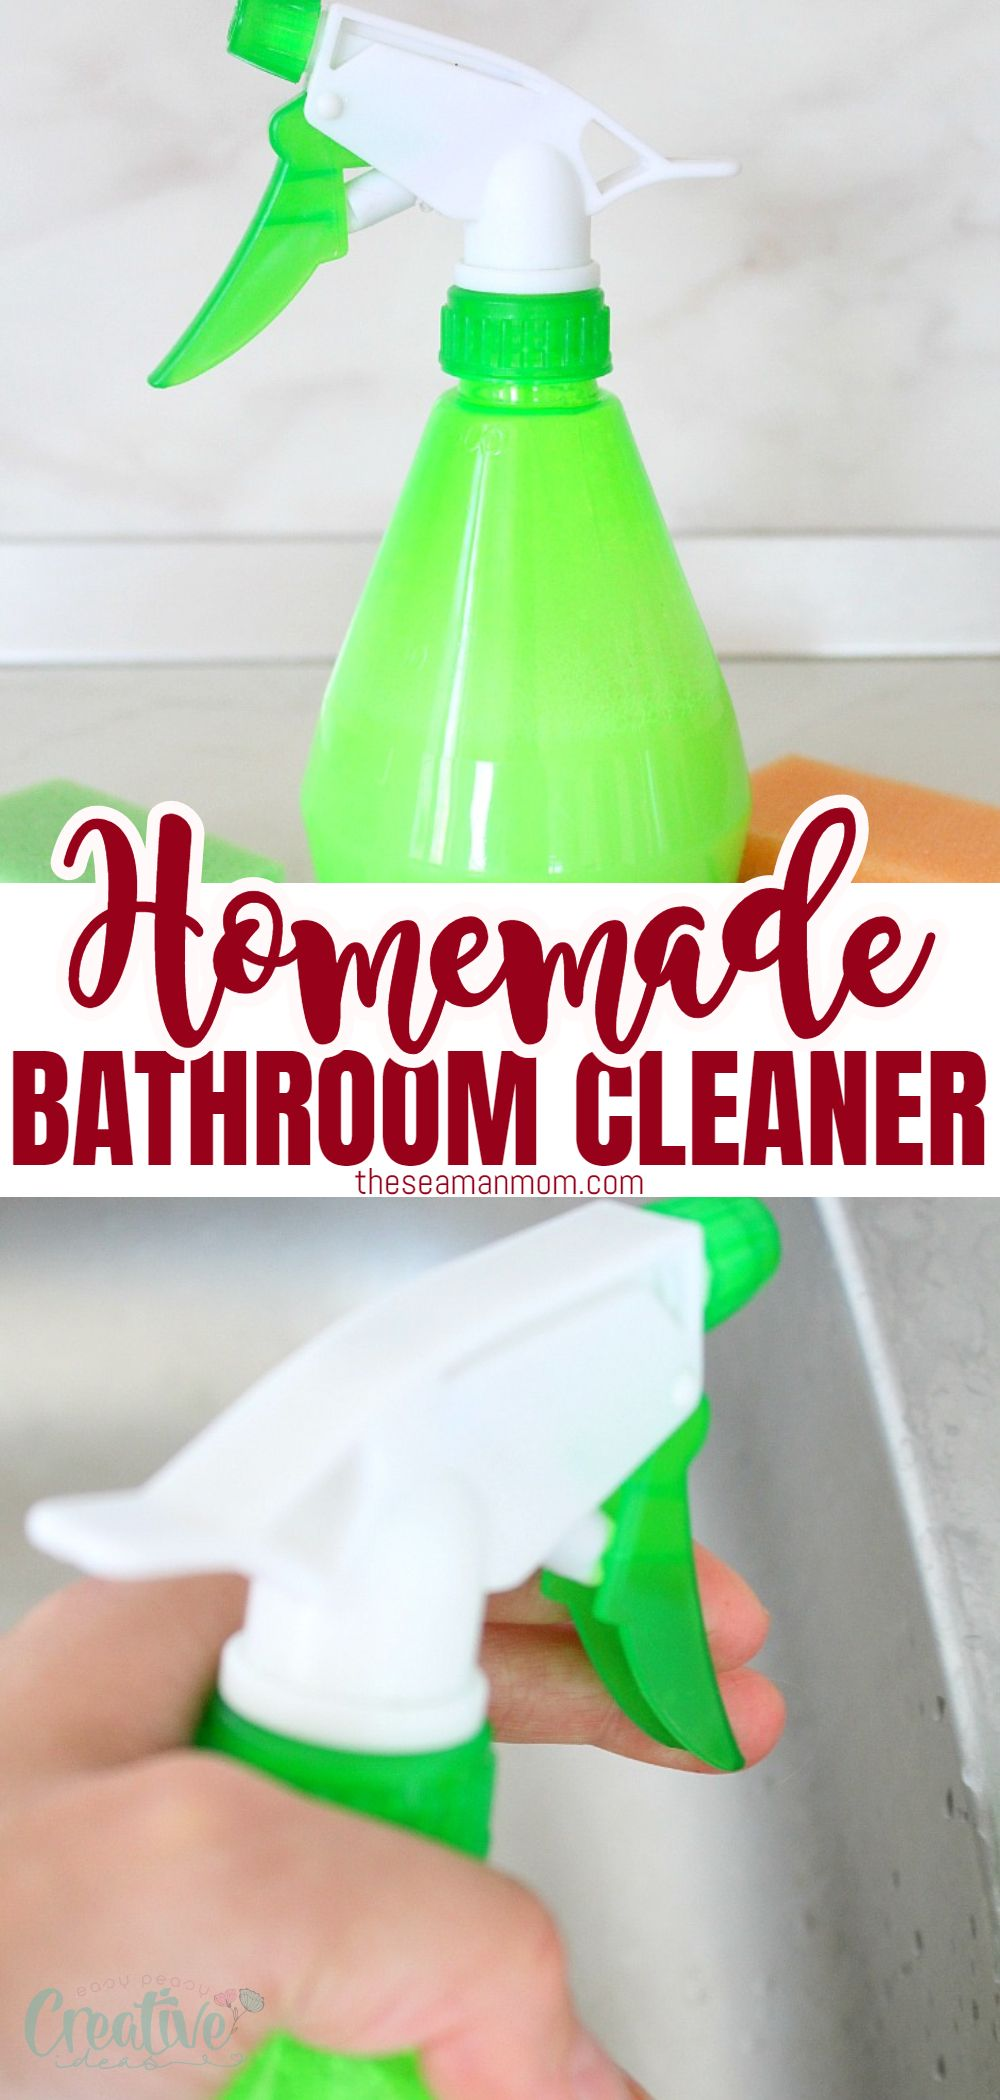 Make your bathroom sparkle and save a pile of money while protecting your house and family from harmful chemicals when you make this simple and efficient homemade bathroom cleaner! via @petroneagu